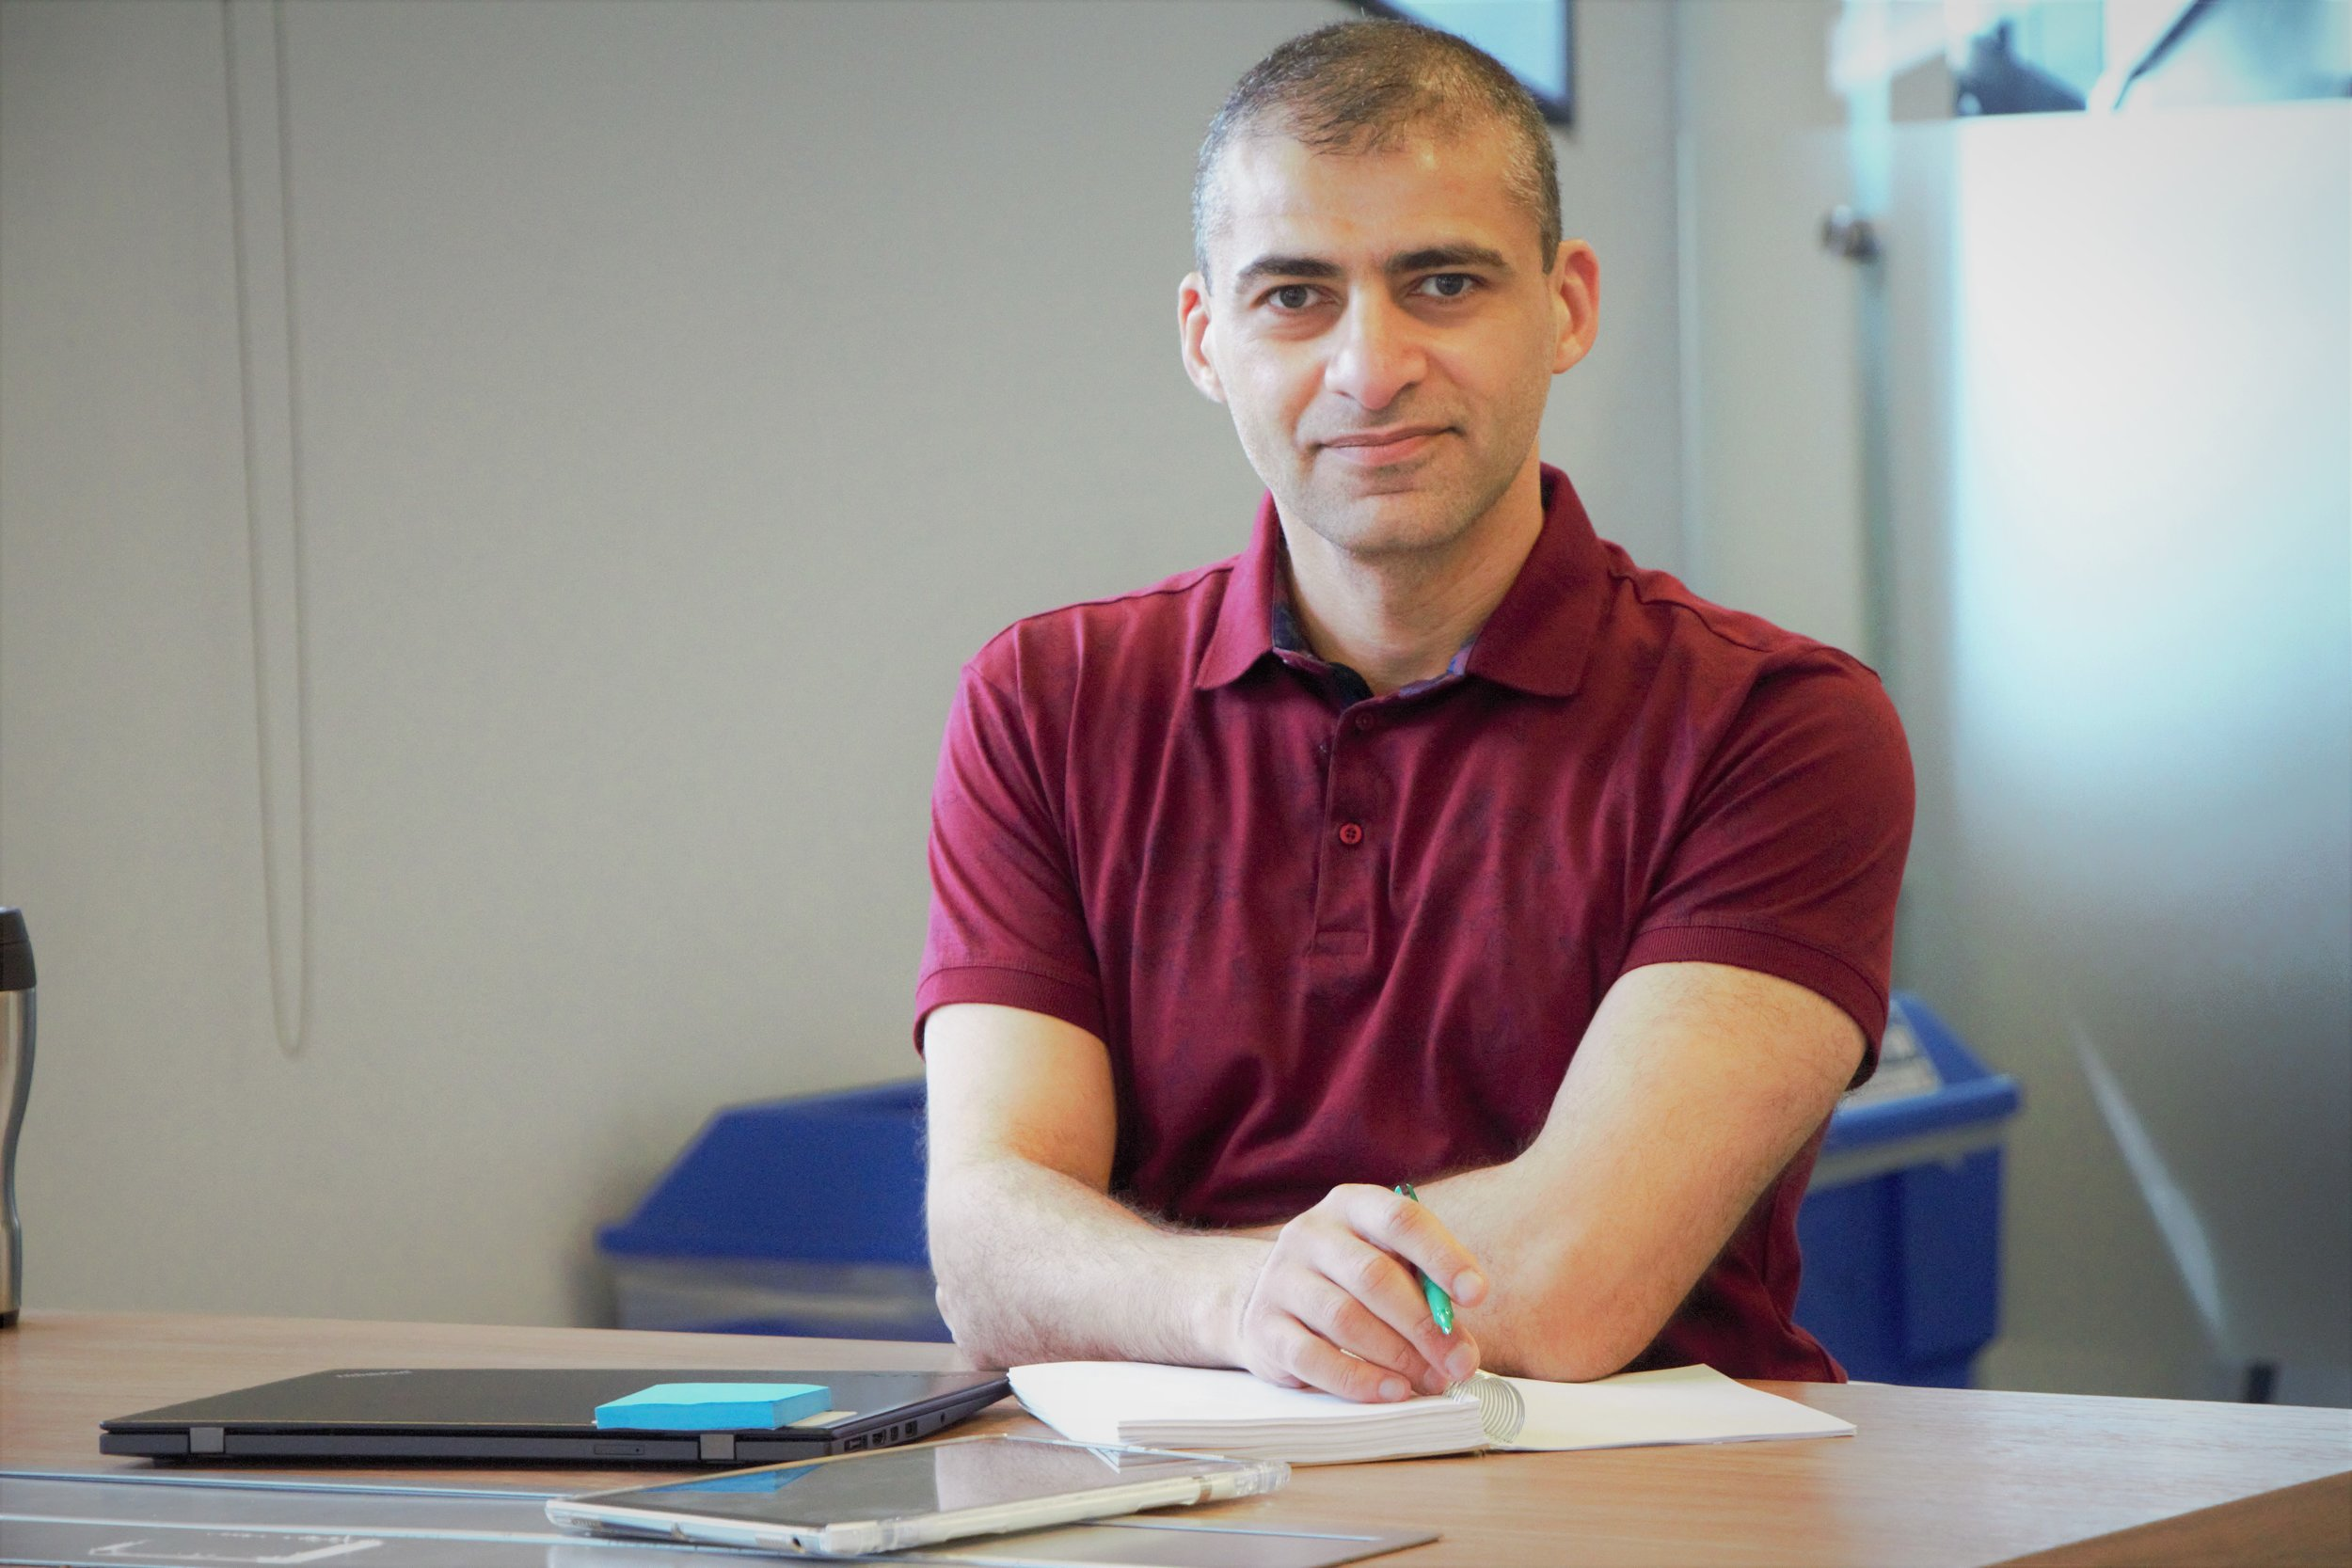 SAMY ELIAS - Dept. Of Electrical Engineering & Computer ScienceSupervisor: Afshin Rezaei-ZareAward: LURABio: Samy Elias is a 3rd year student at Lassonde School of Engineering at York University. Having specialized in Electrical Engineering, Sam is spending the summer exploring the dynamic force on distribution generation connection (DG)connection, in high-voltage substations. Using Matlab, and of course, mathematical models which represent the physics of the problem, Sam will be implementing Dr. Rezaei's approach in solving for the force which the DG connections experience during a short circuit fault. By the end of the summer, Sam is hoping to represent a complete code, which will calculate that force, for the expected given parameters. That force is an important parameter in the construction and operation of the substations.